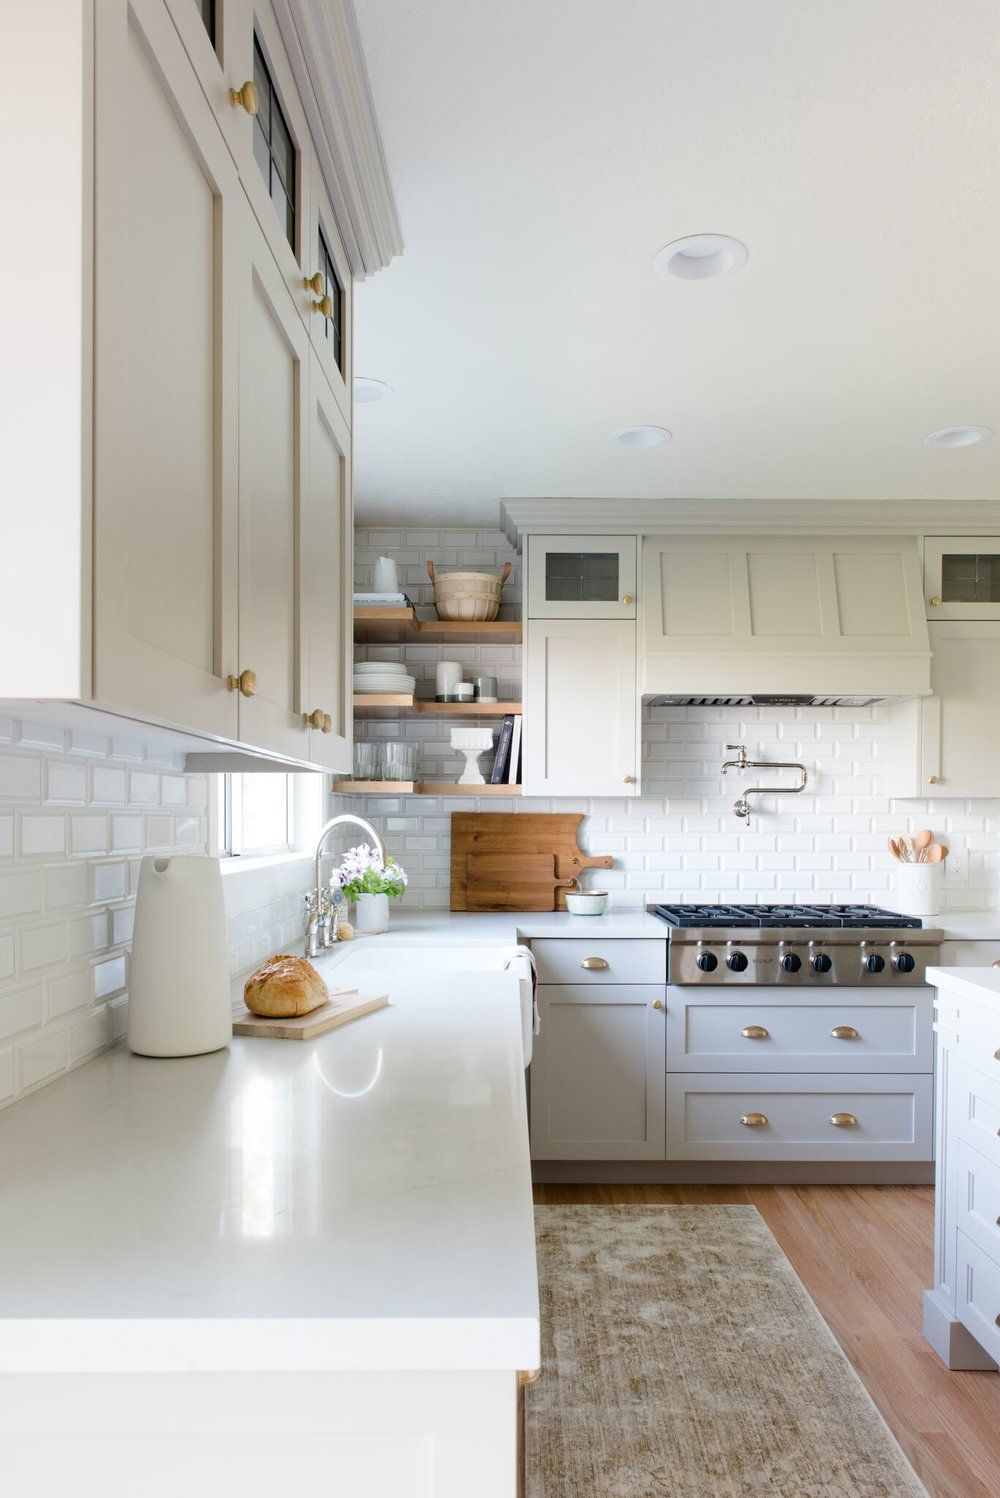 10x10 Kitchen Remodel: Evergreen Kitchen Remodel Reveal (With Images)